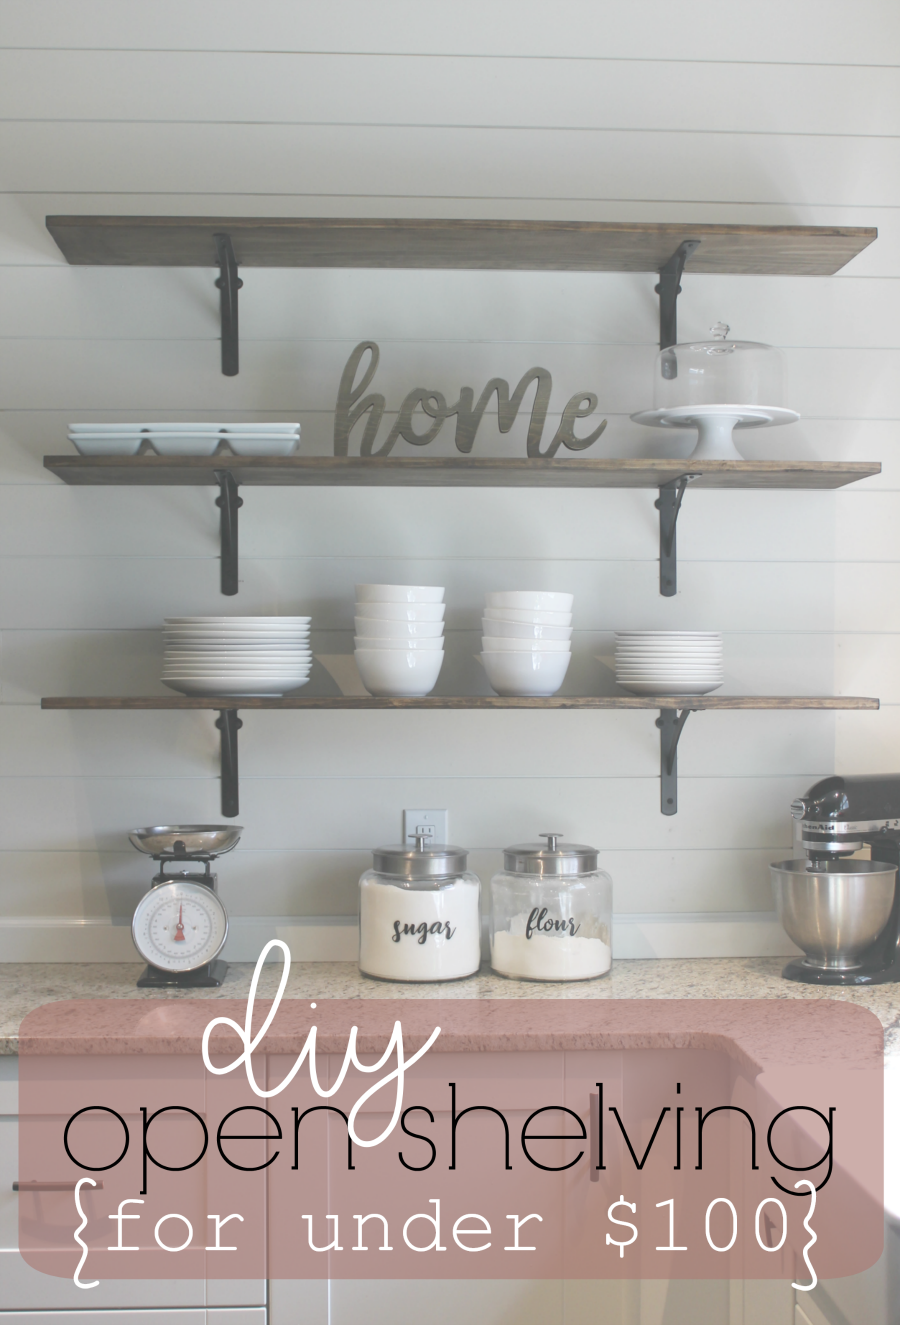 DIY Kitchen Shelves for Under $100 [How To] - Life Storage Blog